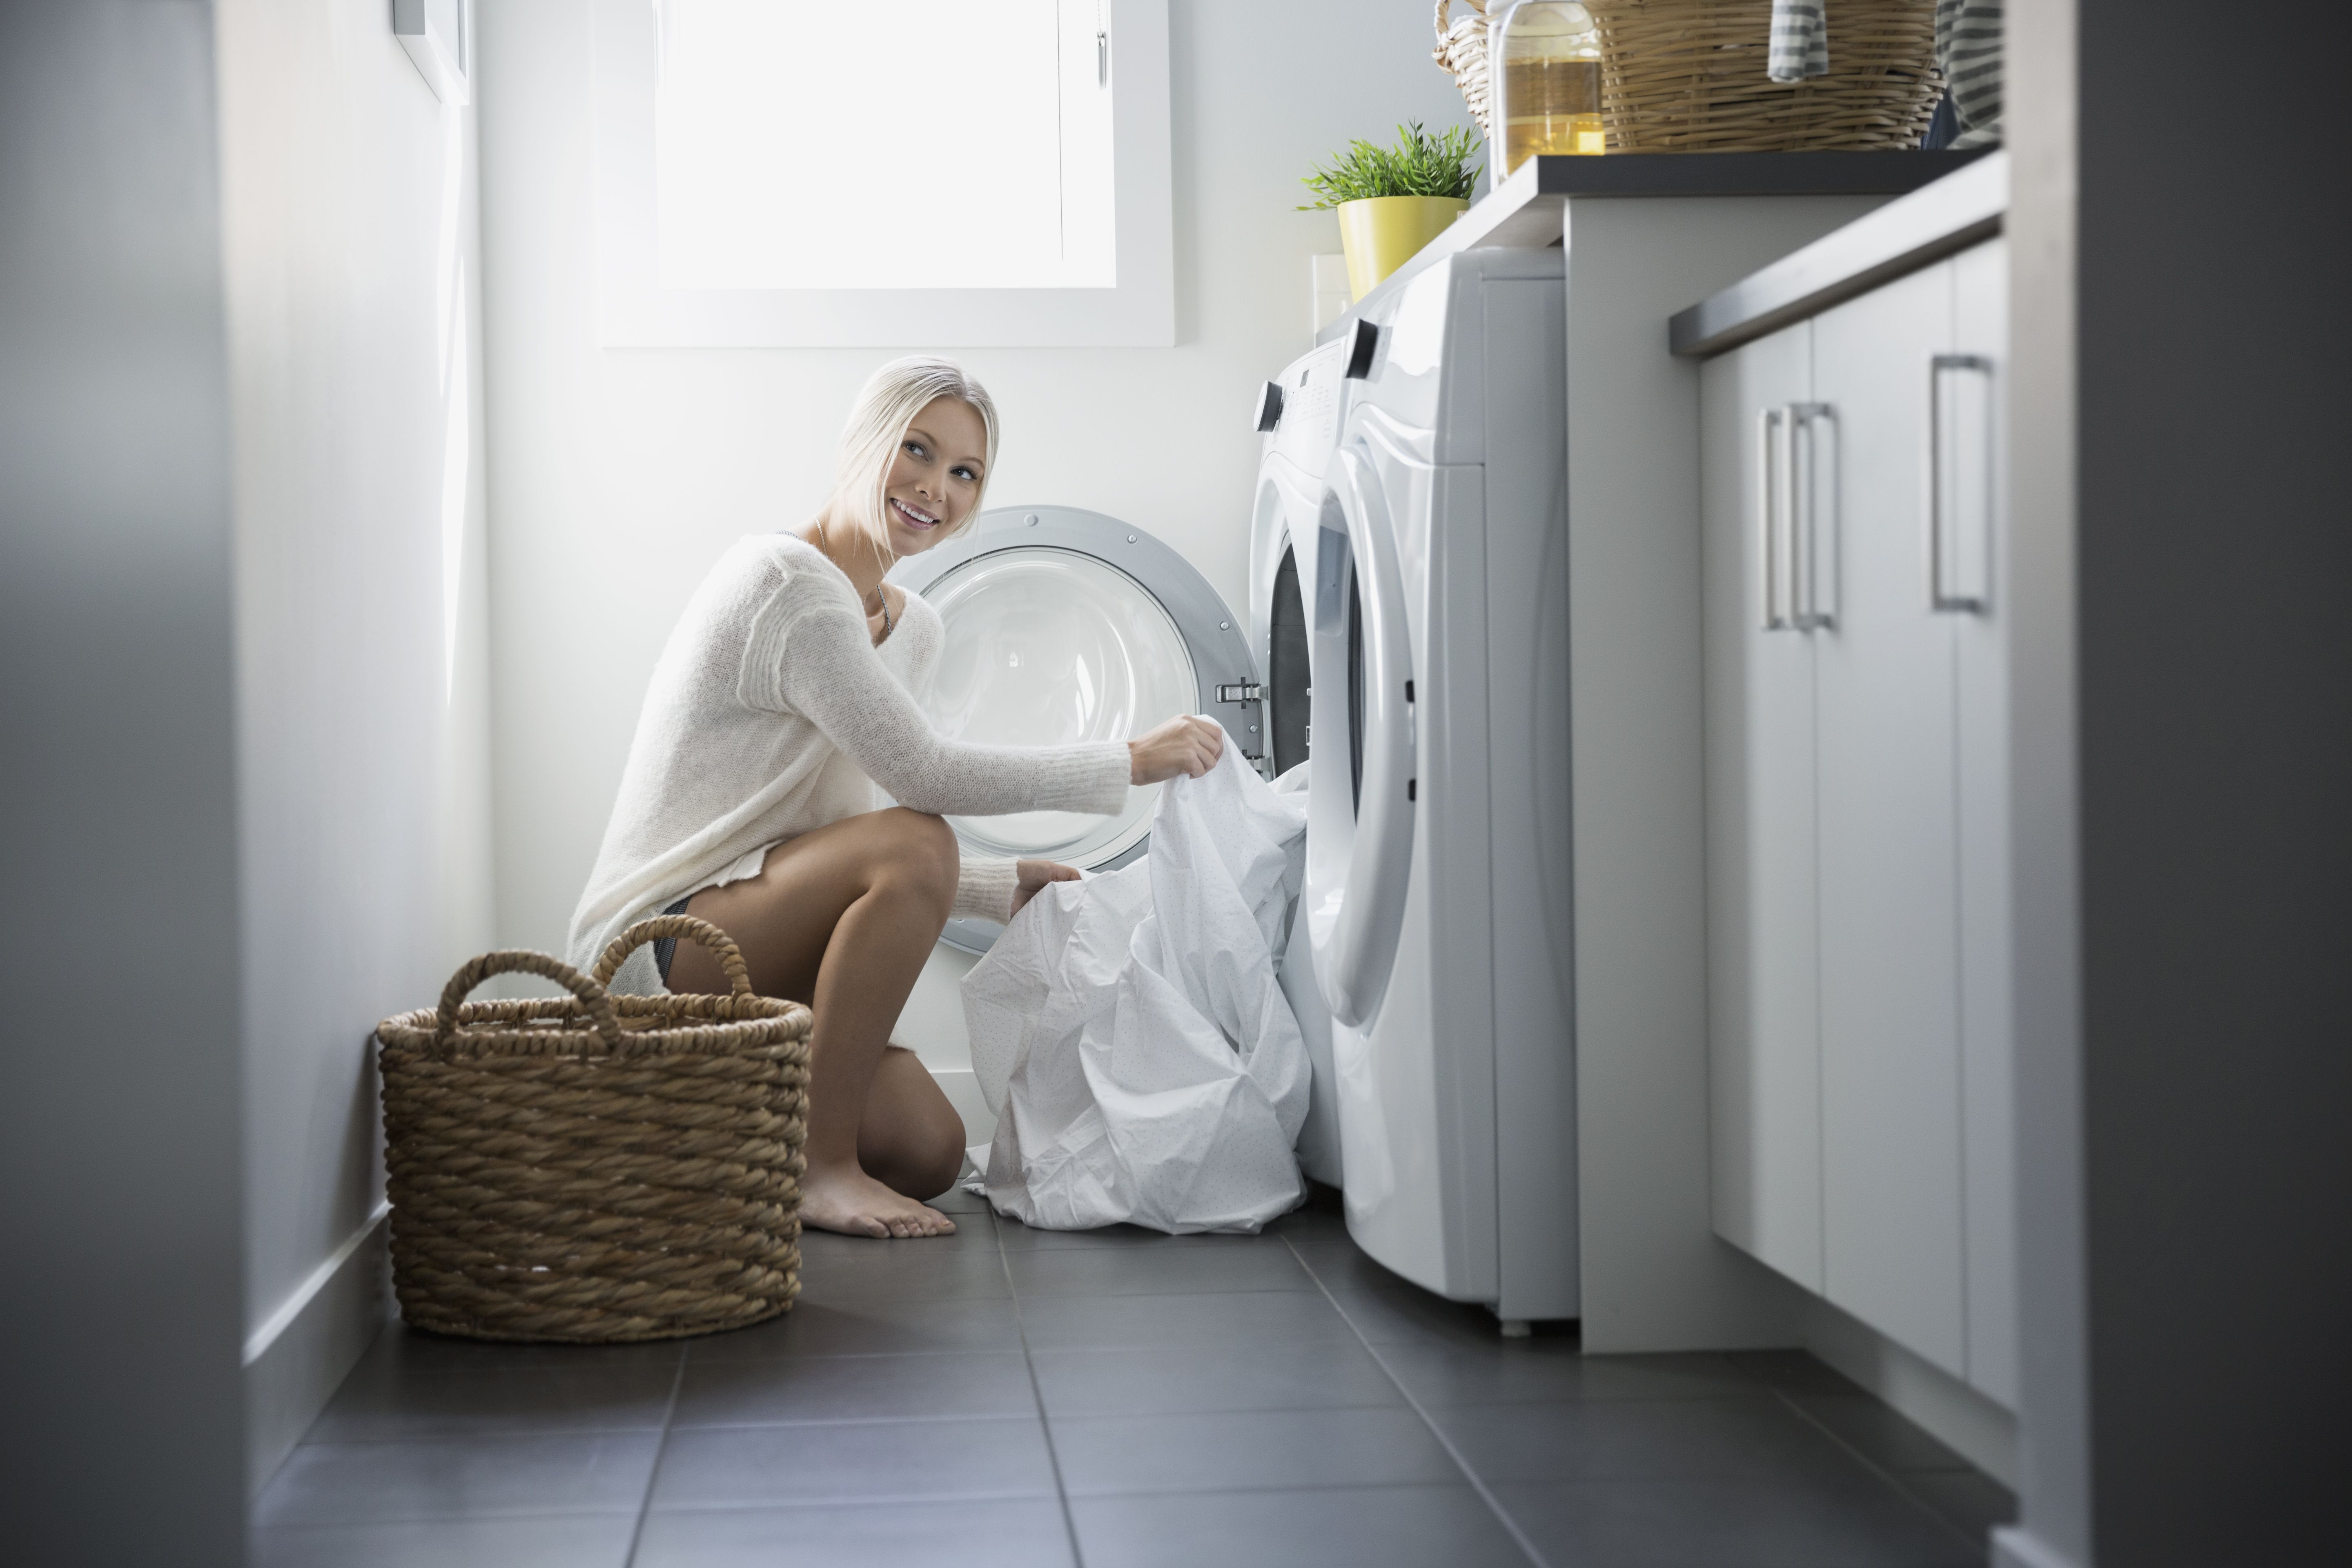 How to do laundry in 10 easy steps the 8 best supplies for doing the laundry in 2018 solutioingenieria Image collections